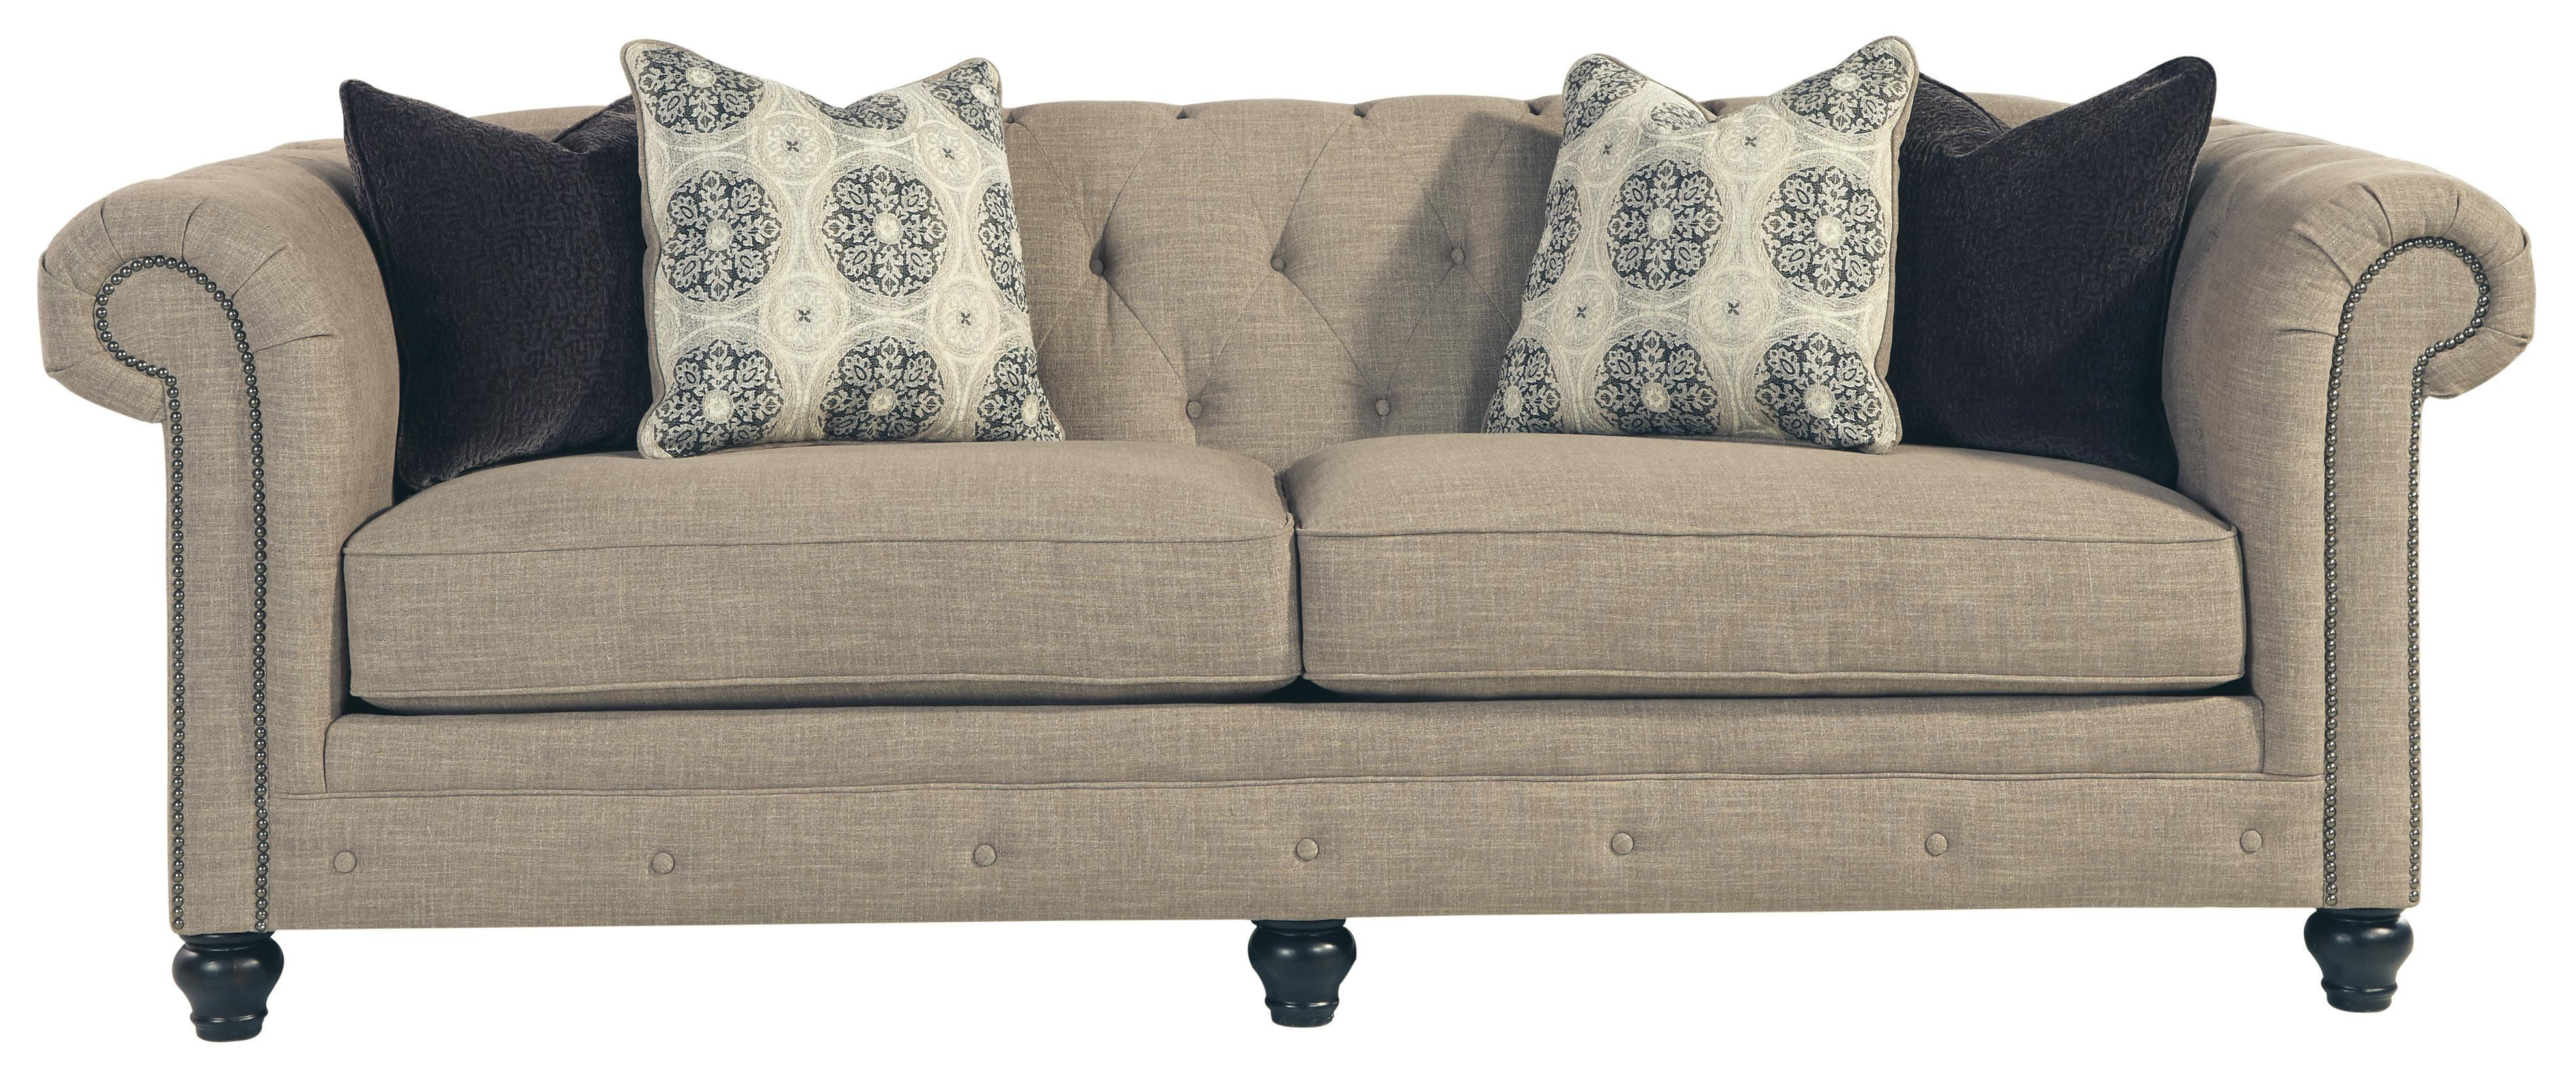 Transitional Chesterfield Sofa With Linen Blend Fabric For Colonial Sofas (Image 20 of 20)